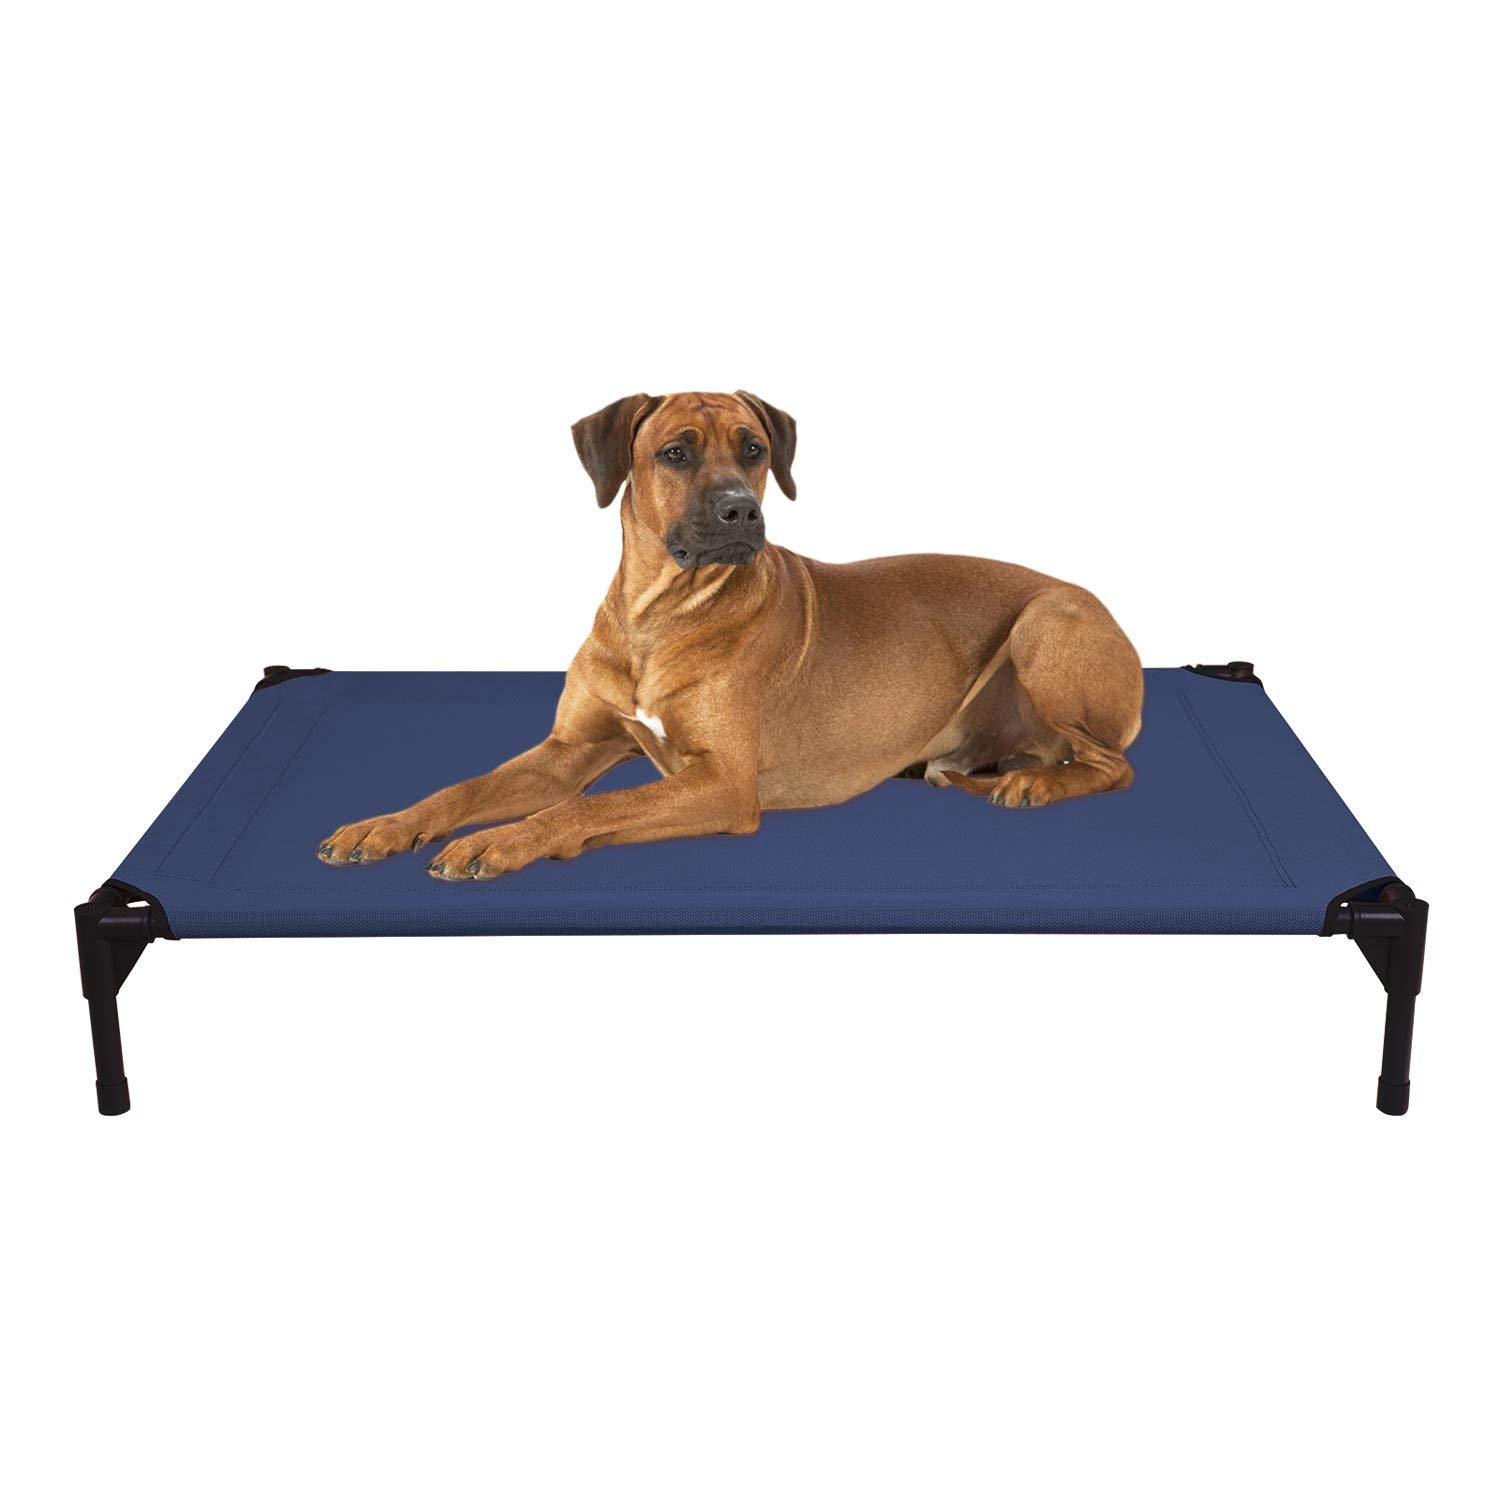 Veehoo Cooling Elevated Dog Bed for Summer, Portable Raised Pet Cot, Waterproof & Breathable Mat, Durable Textilene Mesh Fabric, No-Slip Feet, Indoor or Outdoor Use